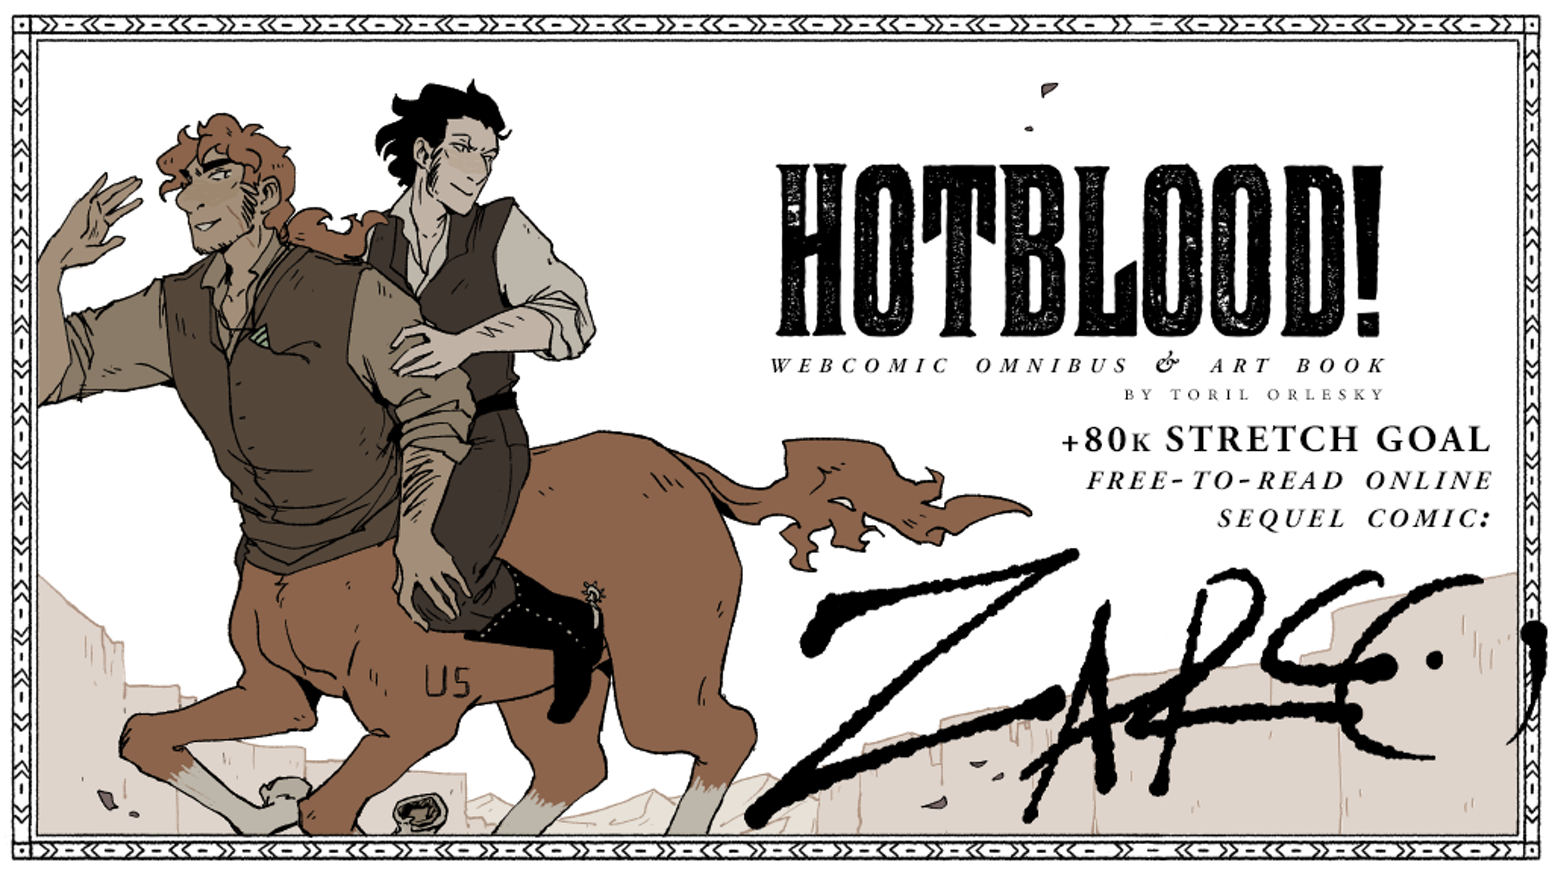 The complete print edition of the webcomic Hotblood!, a story about centaurs in the American Old West.